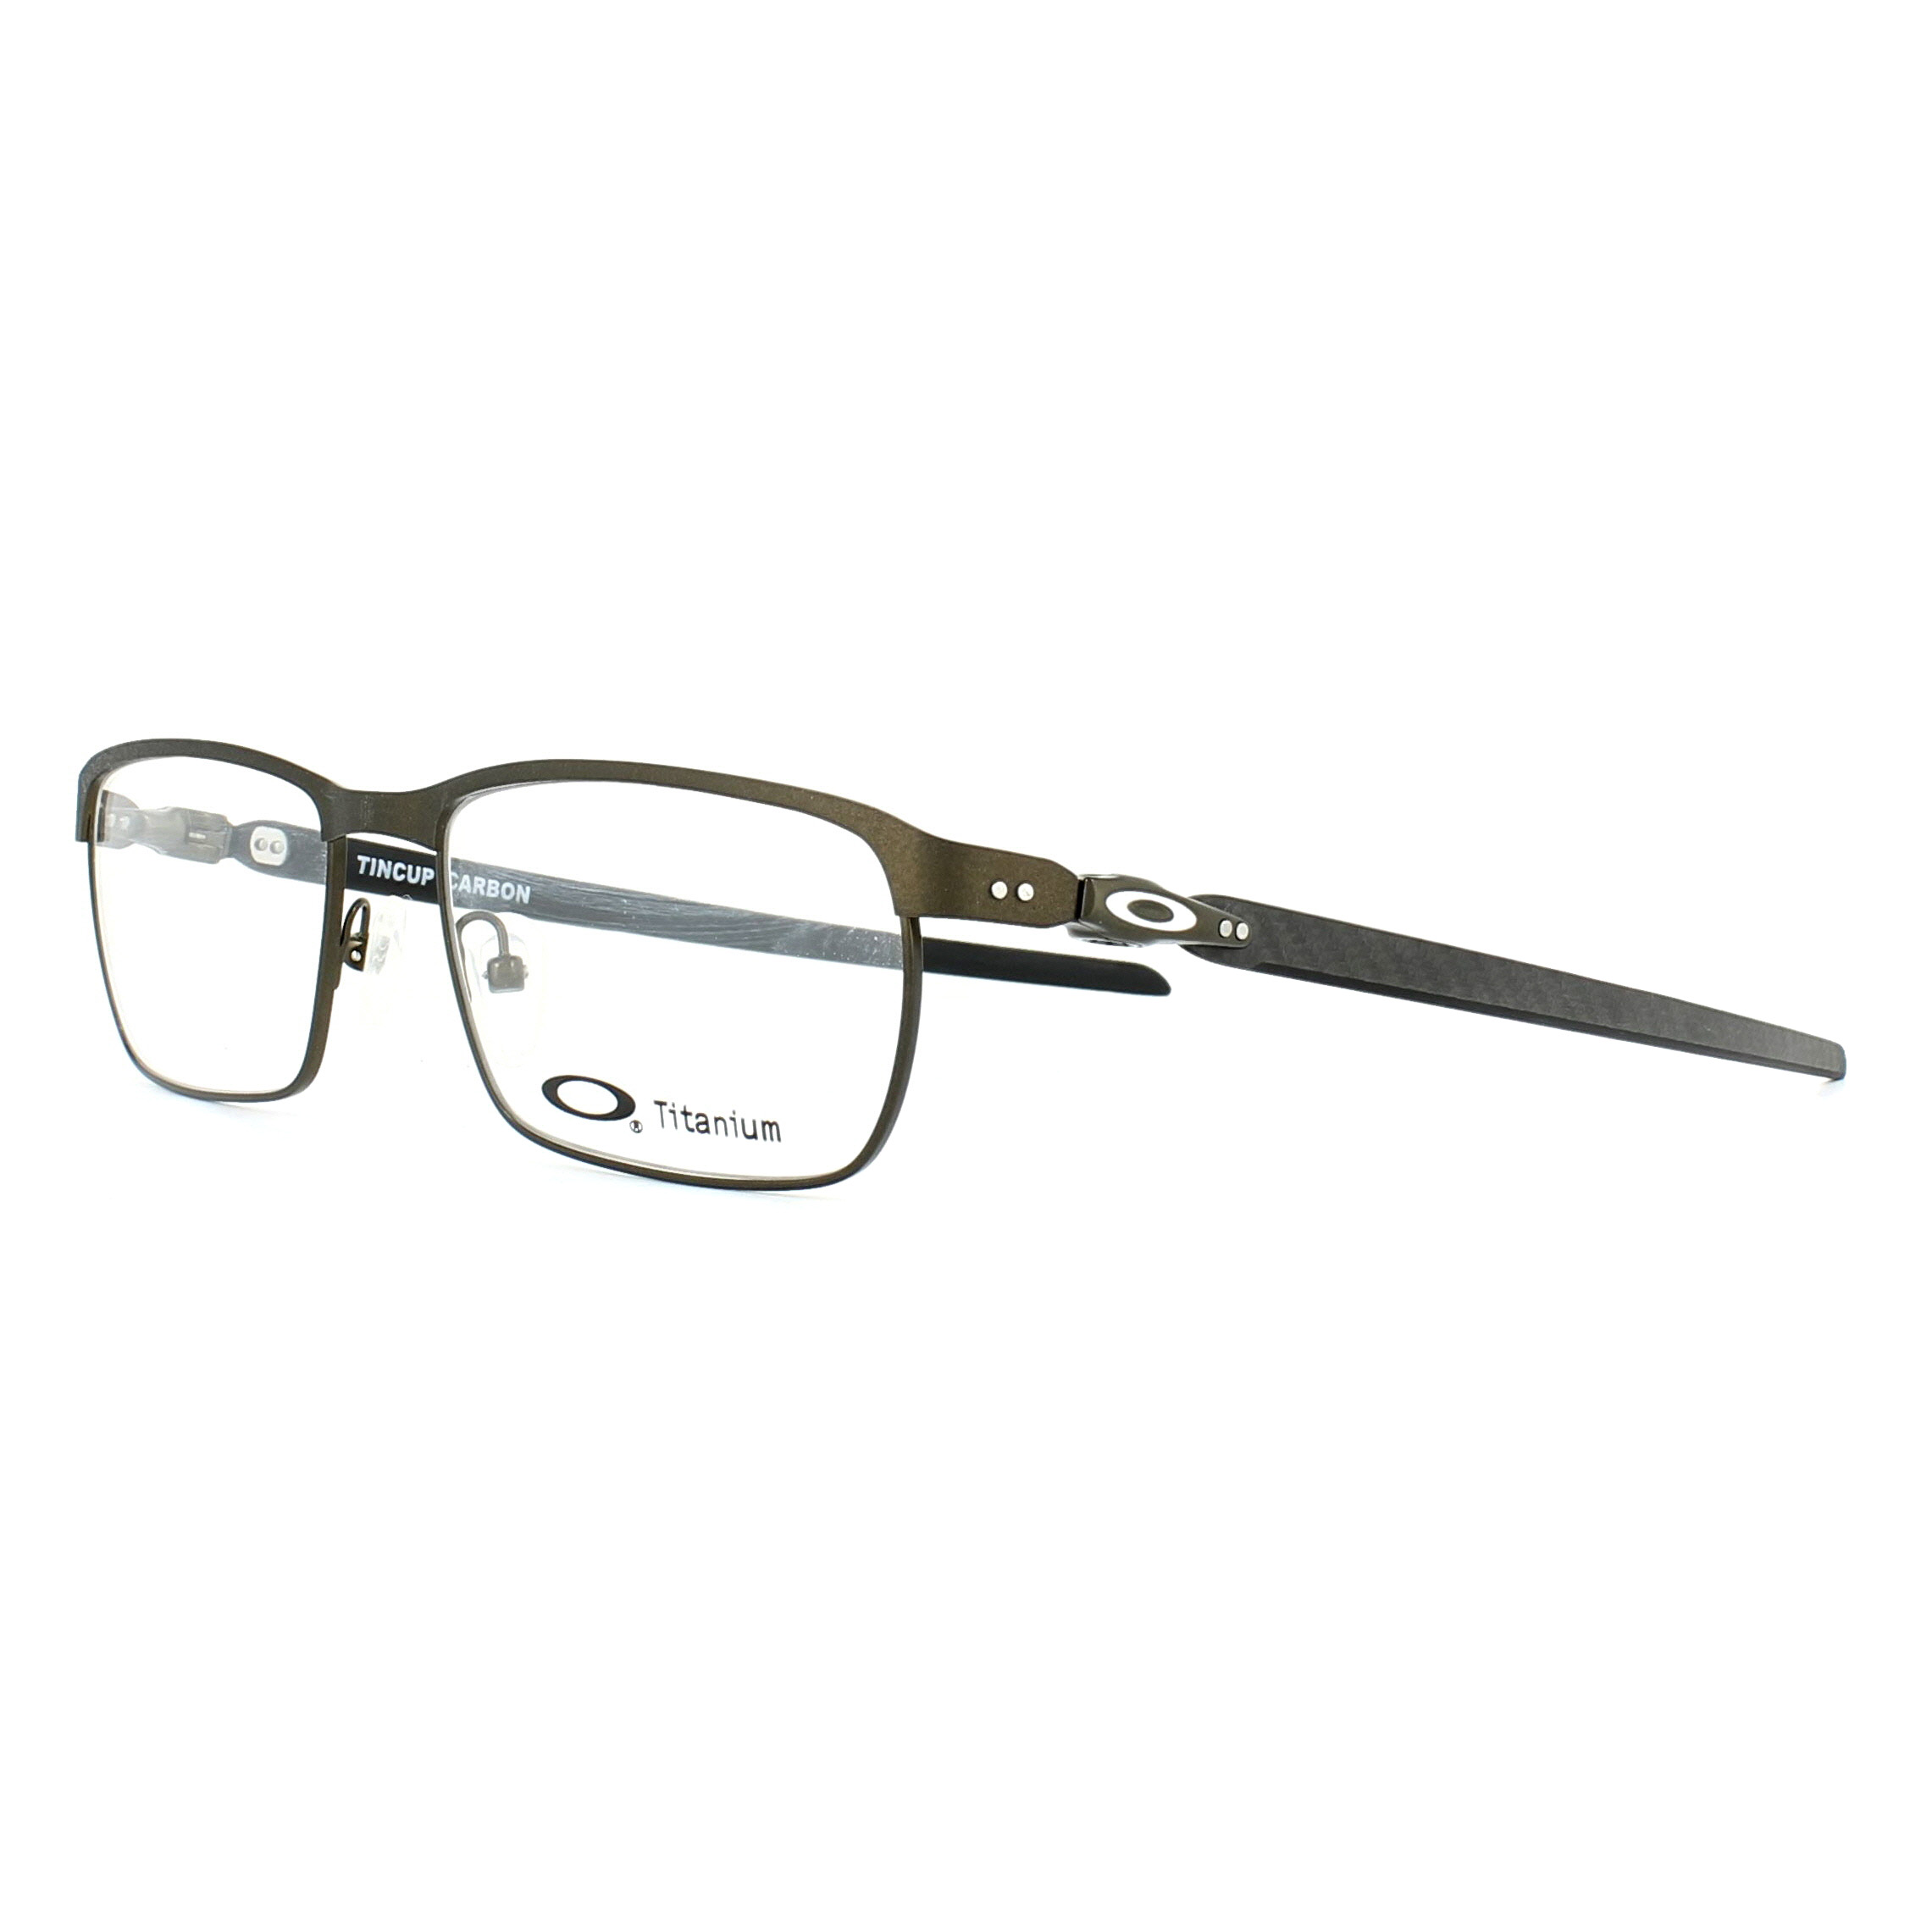 5b9c7c85a2 Sentinel Oakley Glasses Frames 5094 Tincup Carbon OX5094-02 Powder Pewter  54mm Mens